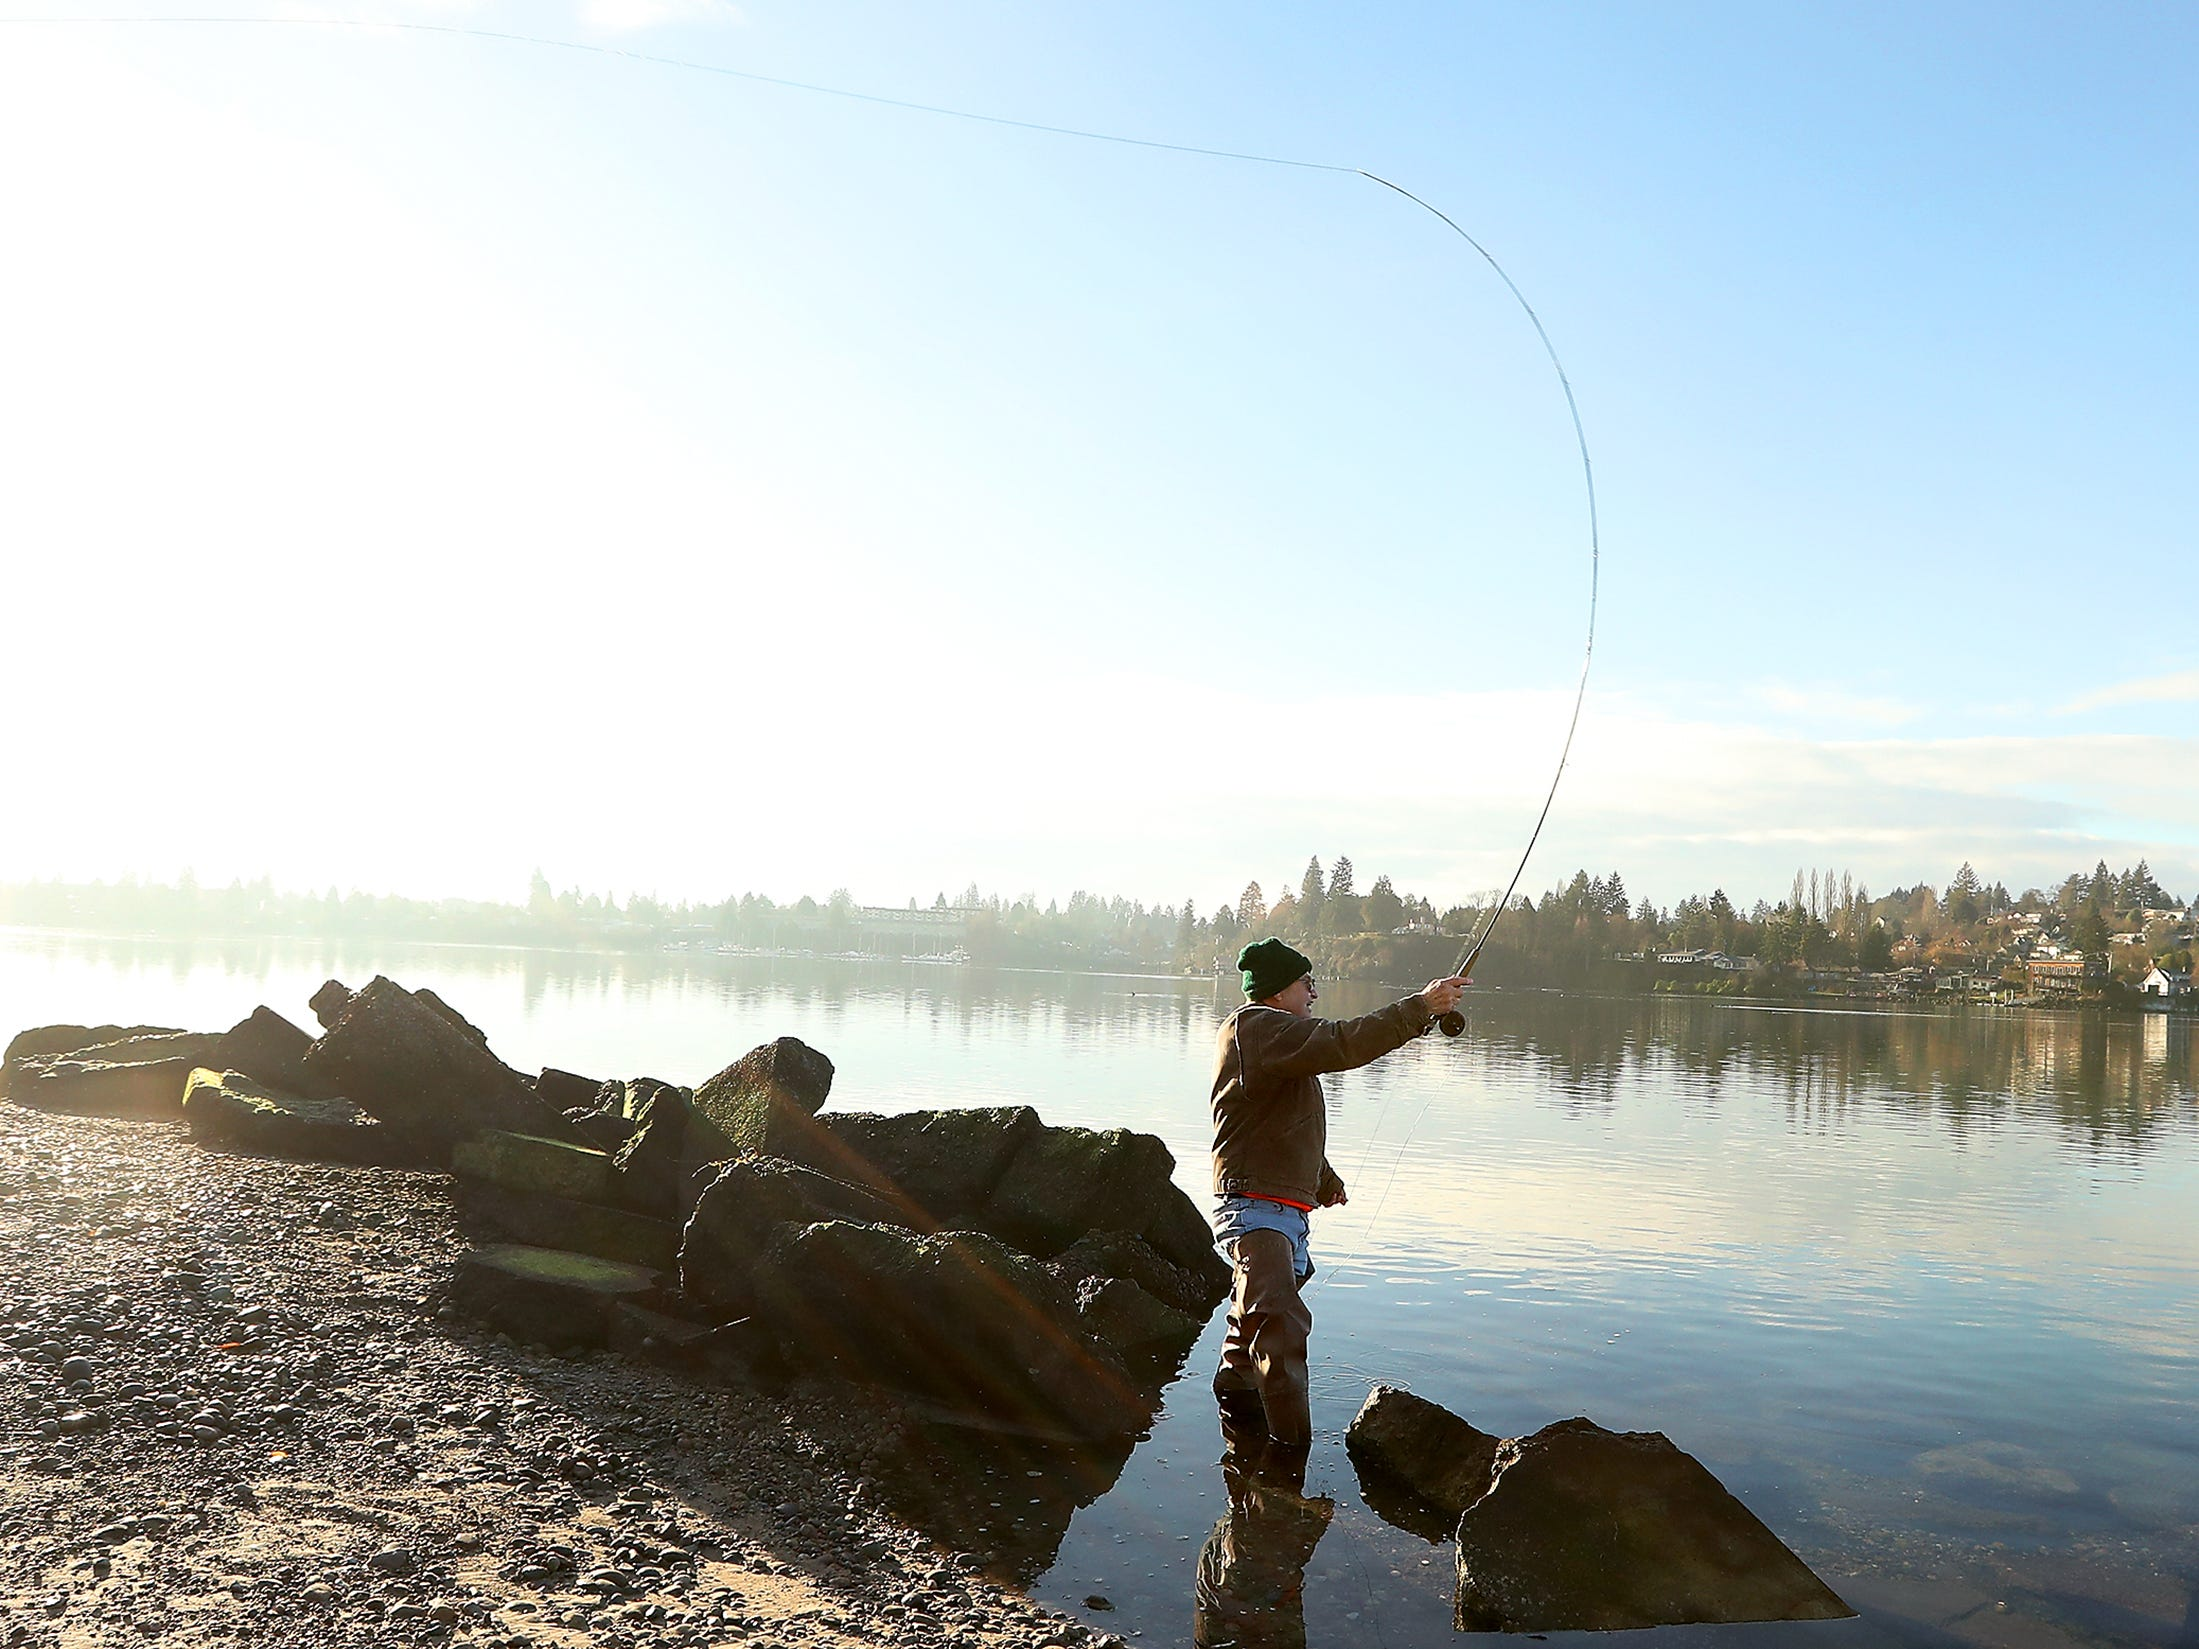 Kitsap Poggie Club member Henry Altenburg takes advantage of the crisp sunny morning to cast his line out in search for sea-run cutthroat trout at Pat Carey Vista in Bremerton on Wednesday, January 16, 2019.